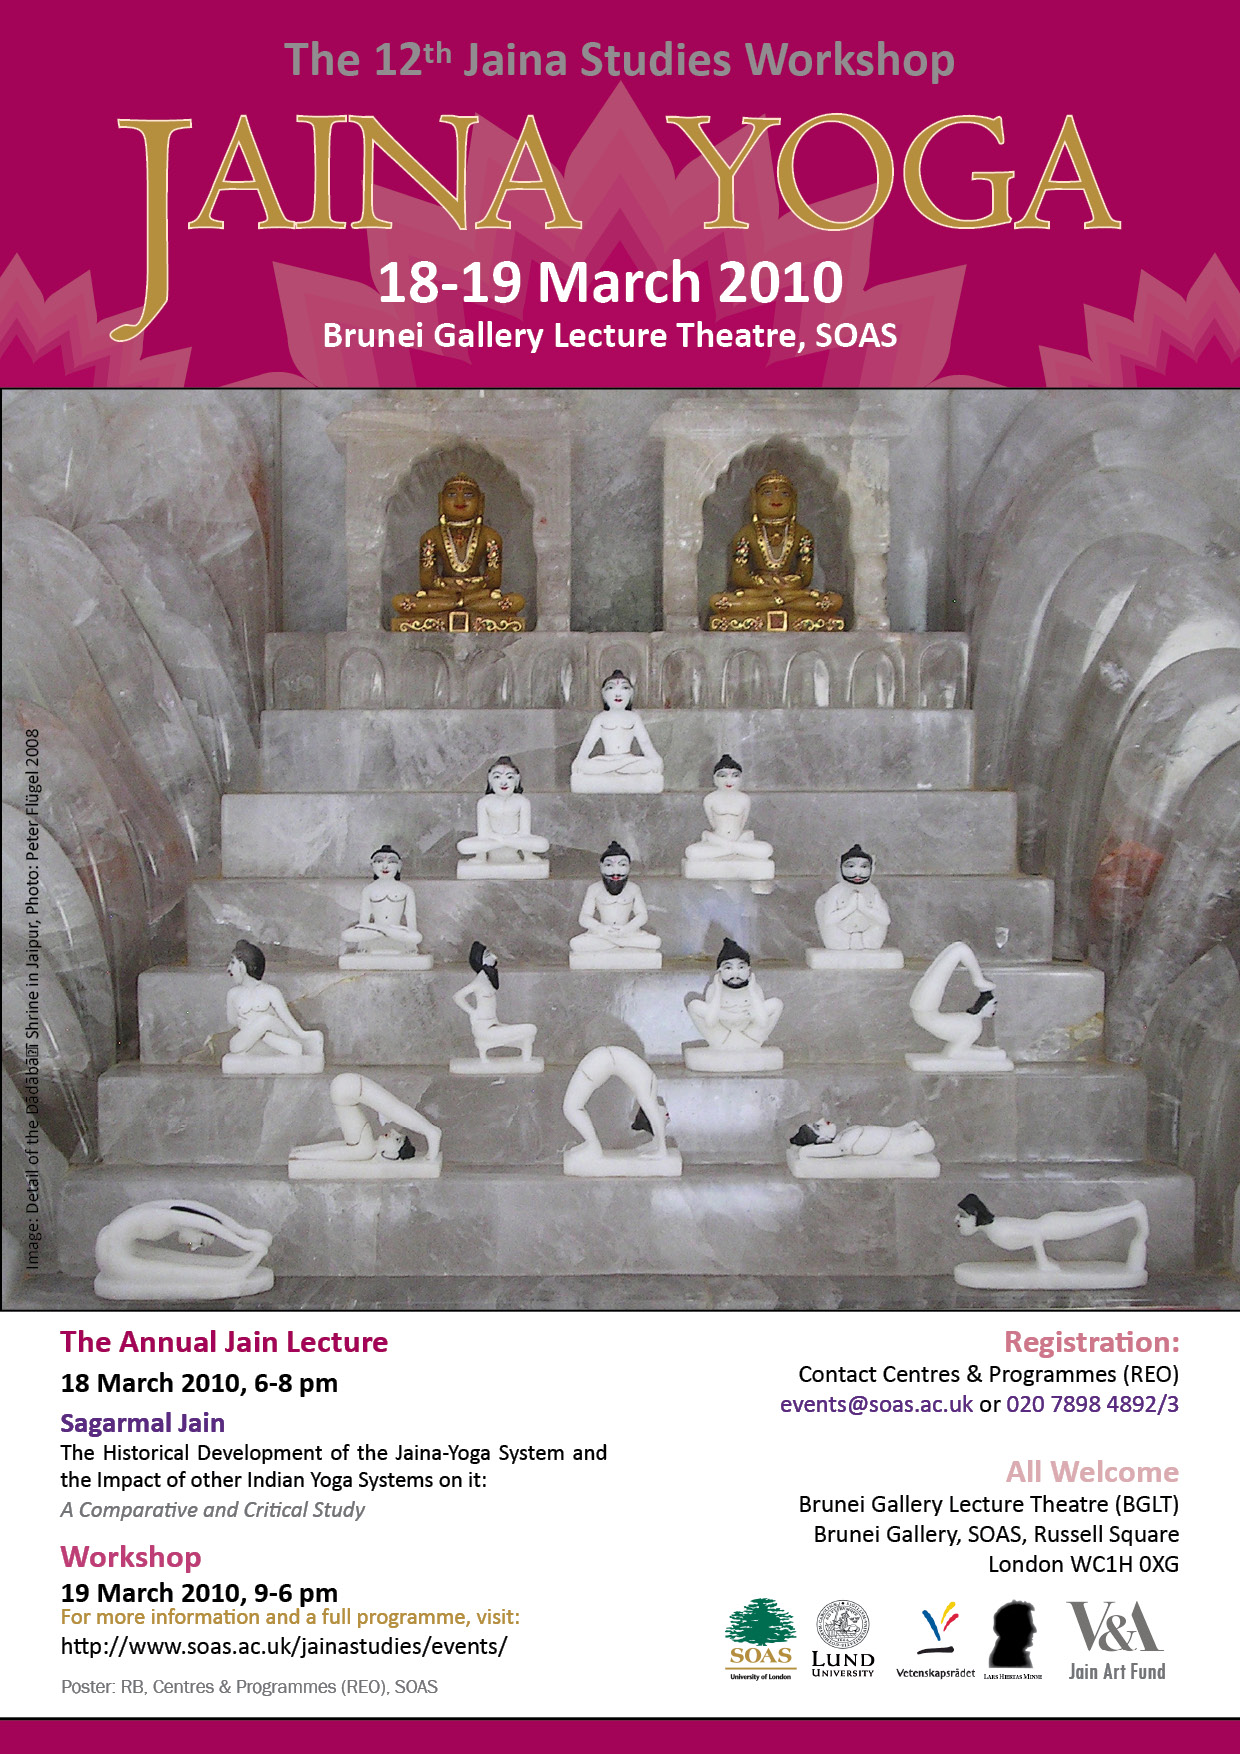 http://www.herenow4u.net/fileadmin/v3media/pics/organisations/SOAS/Workshop_2010/SOAS_jainayogaposter2010.jpg